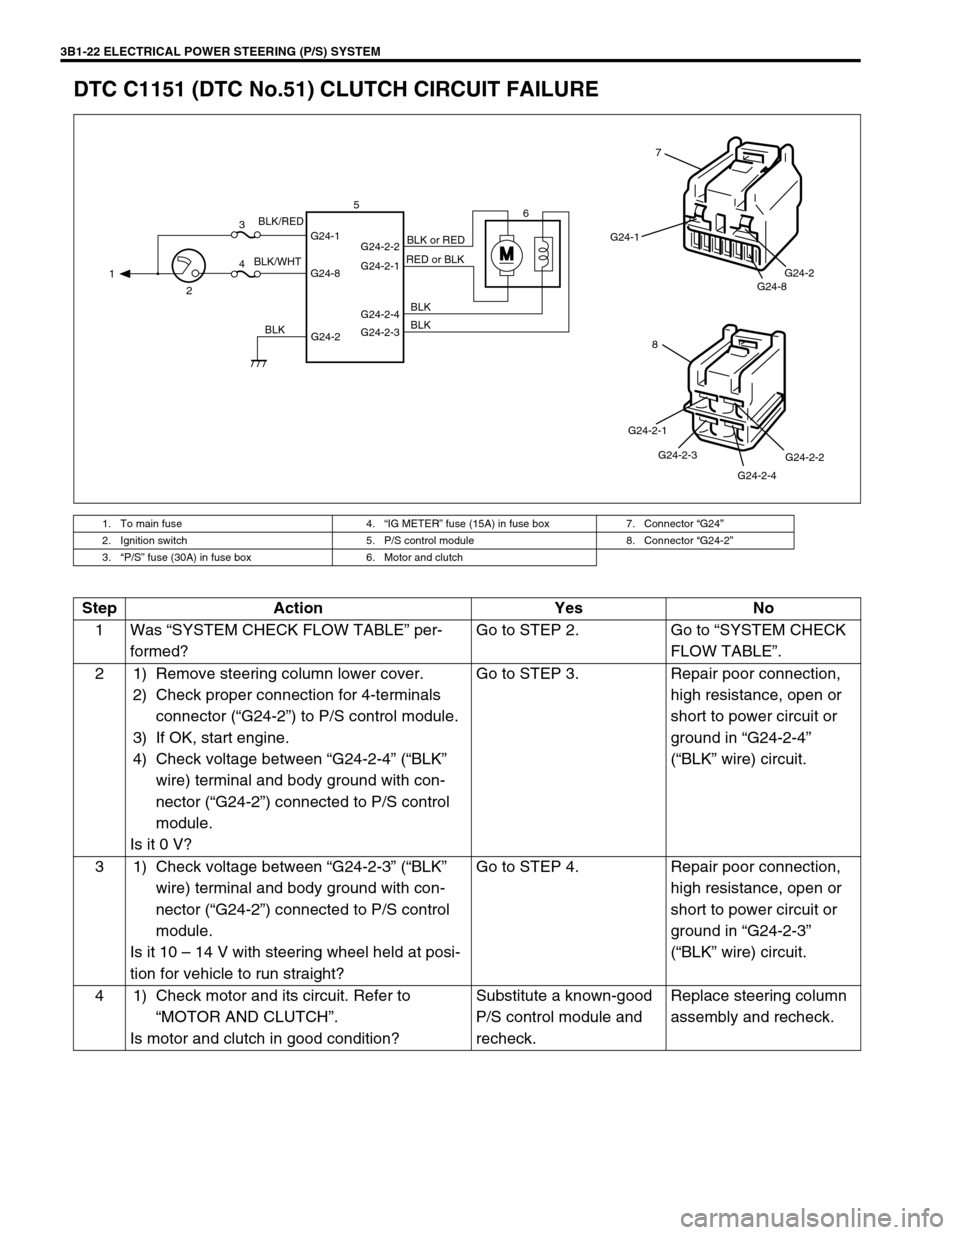 Suzuki Swift 2000 1g Rg413 Service Workshop Manual Fuse Box Page 163